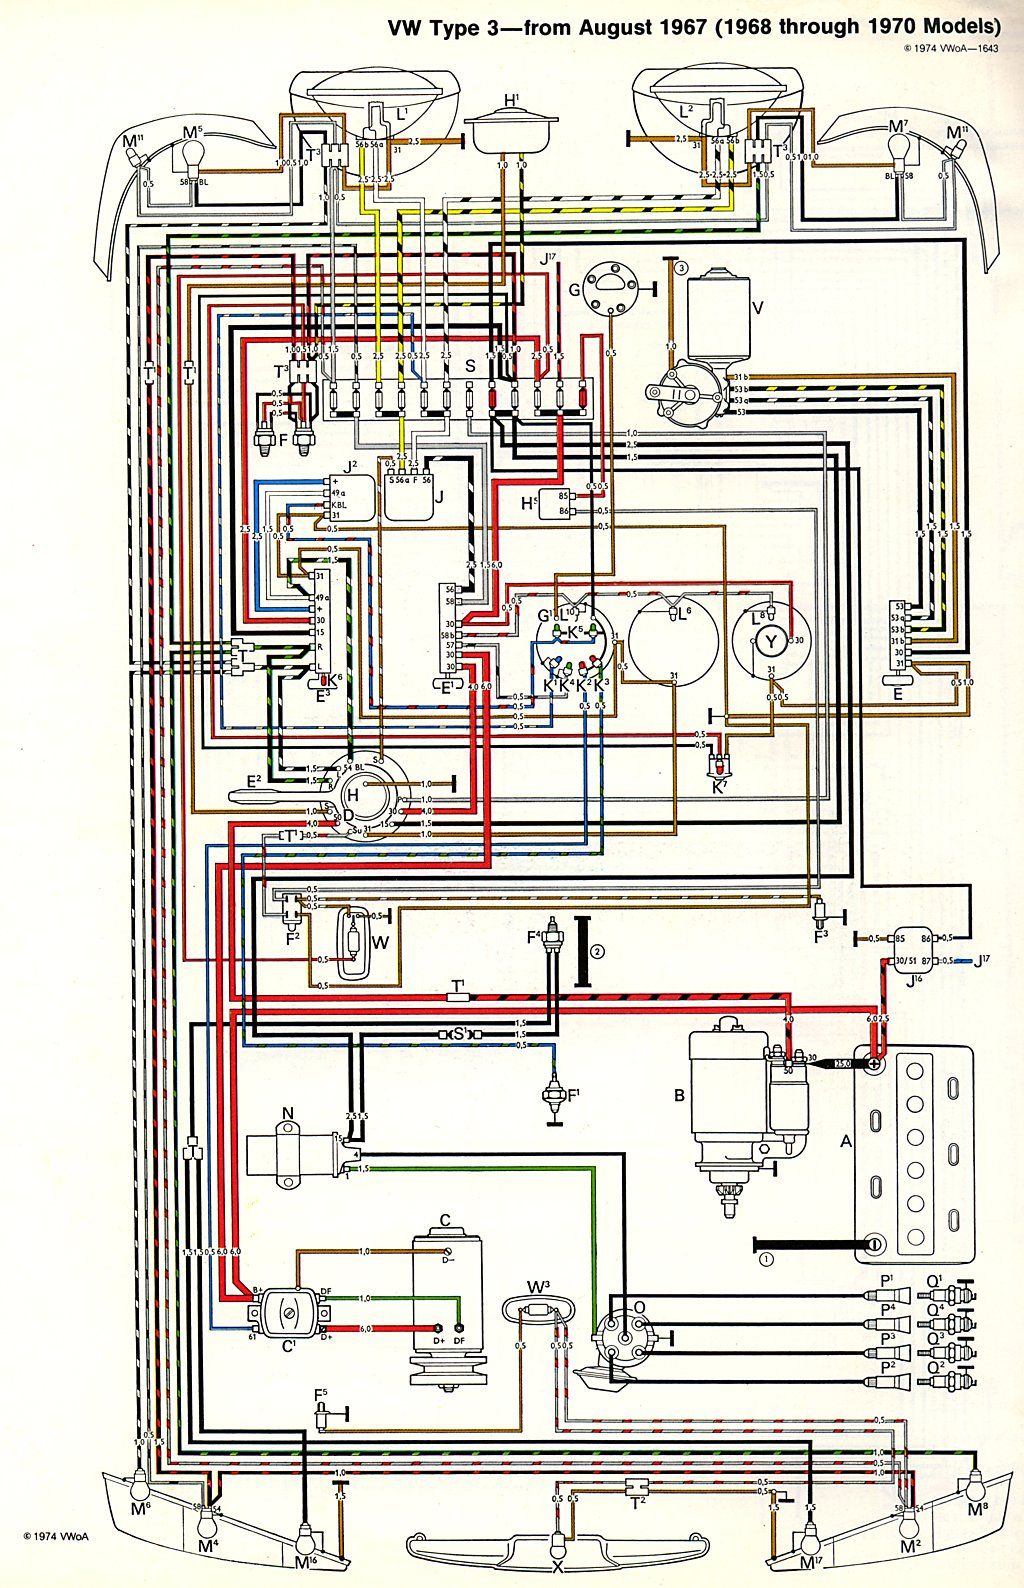 type3_6870 thesamba com type 3 wiring diagrams 1968 vw bug wiring diagram at aneh.co